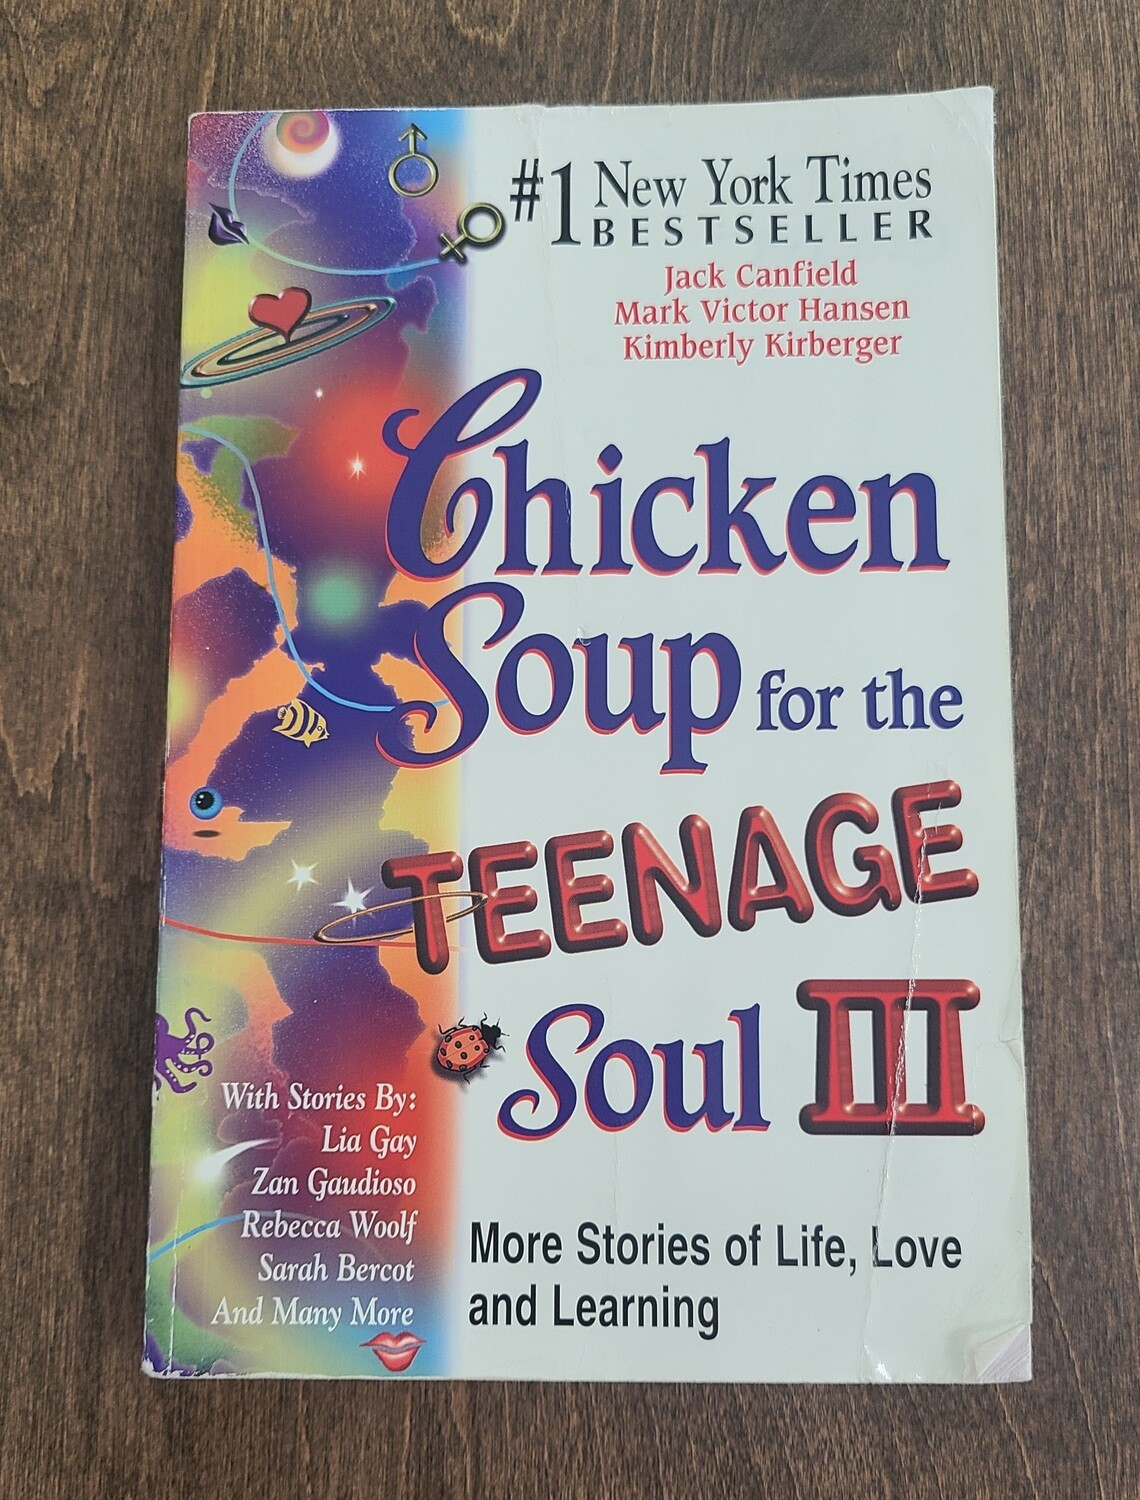 Chicken Soup for the Teenage Soul III by Jack Canfield, Mark Victor Hansen, and Kimberly Kirberger